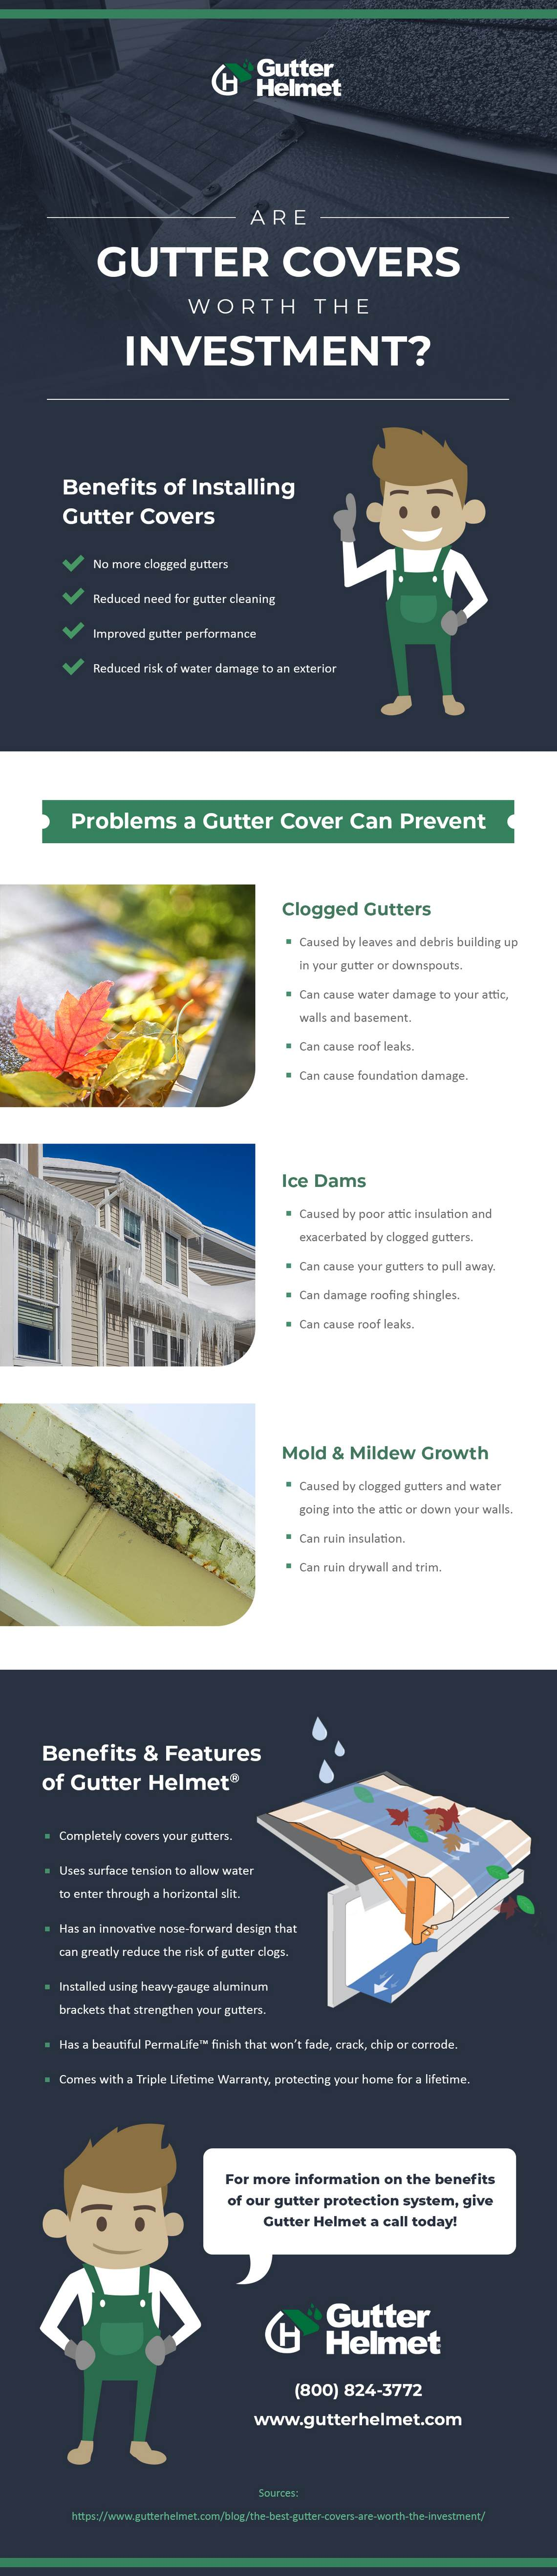 Infographic – Are Gutter Covers Worth the Investment